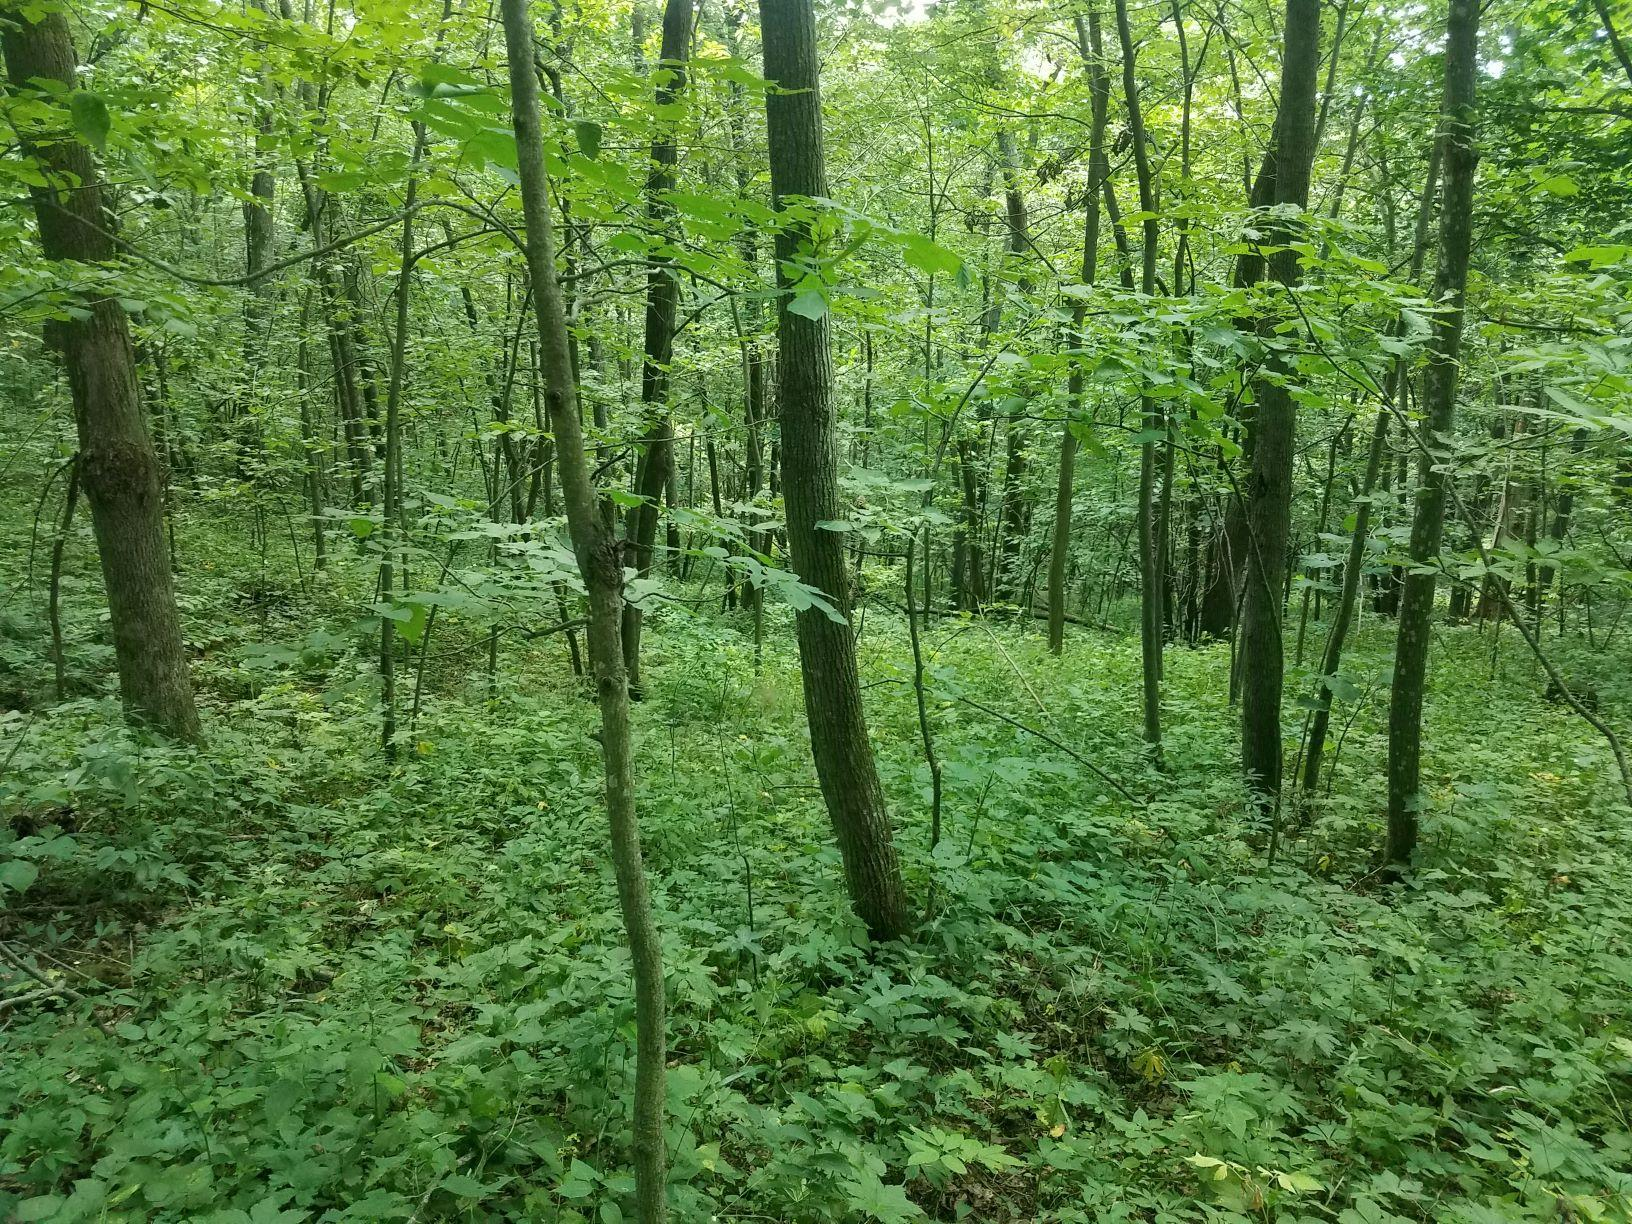 0 Whistle Pass Rd, Dodge, Wisconsin 54625, ,Vacant Land,For Sale,Whistle Pass Rd,1702793